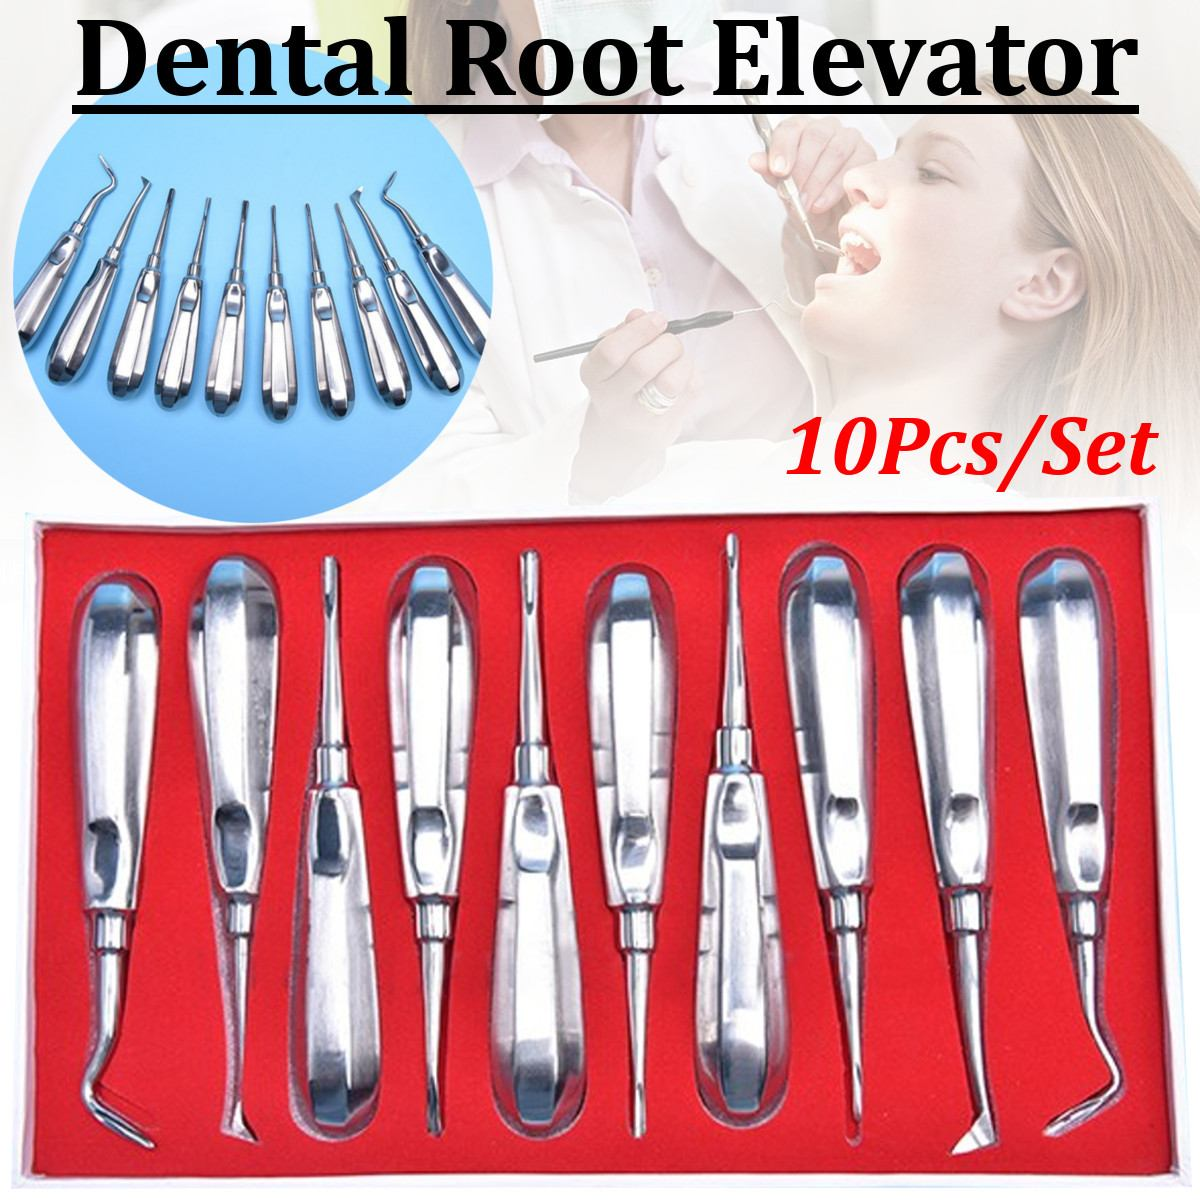 10Pcs Stainless Steel Dental Orthodontic Root Elevator Head Curved Pen Tool Dentistry Dentist Instrument Teeth Whitening Device